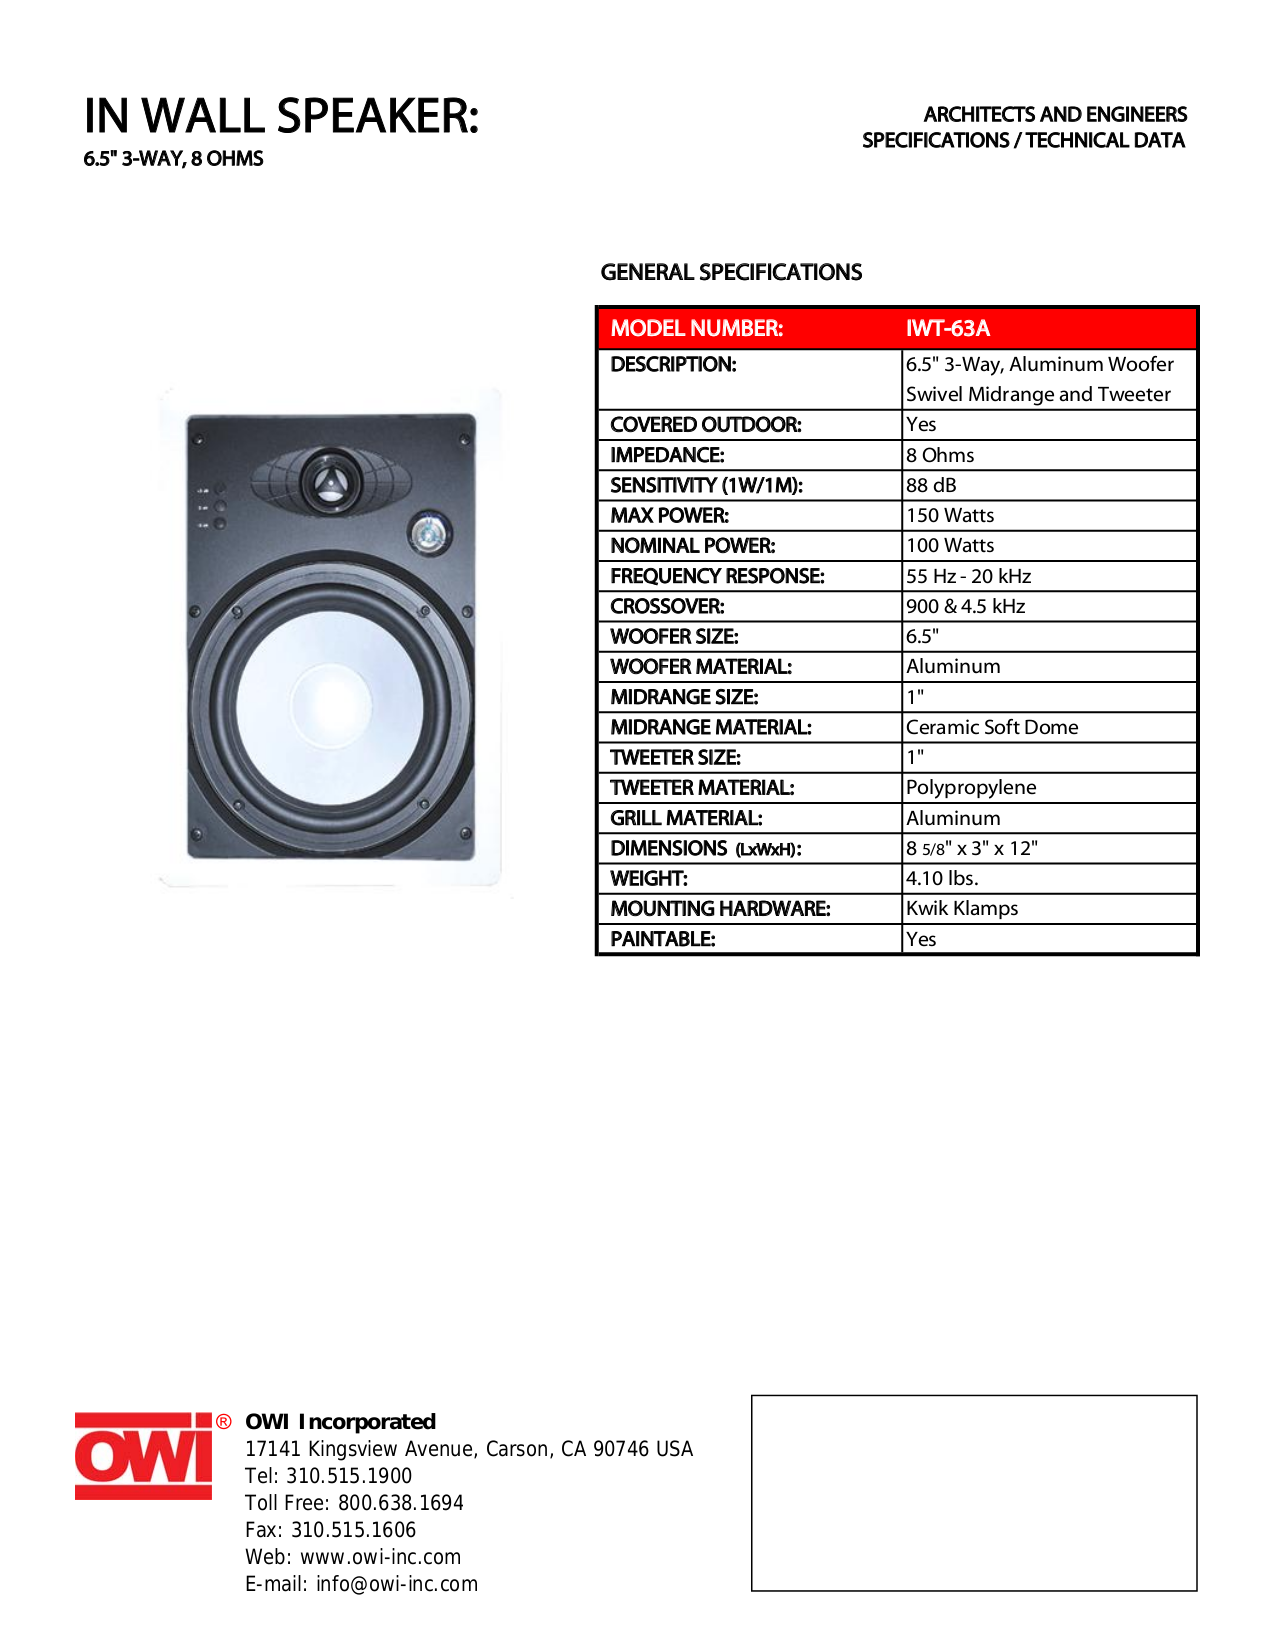 pdf for Owi Speaker IWT-63A manual